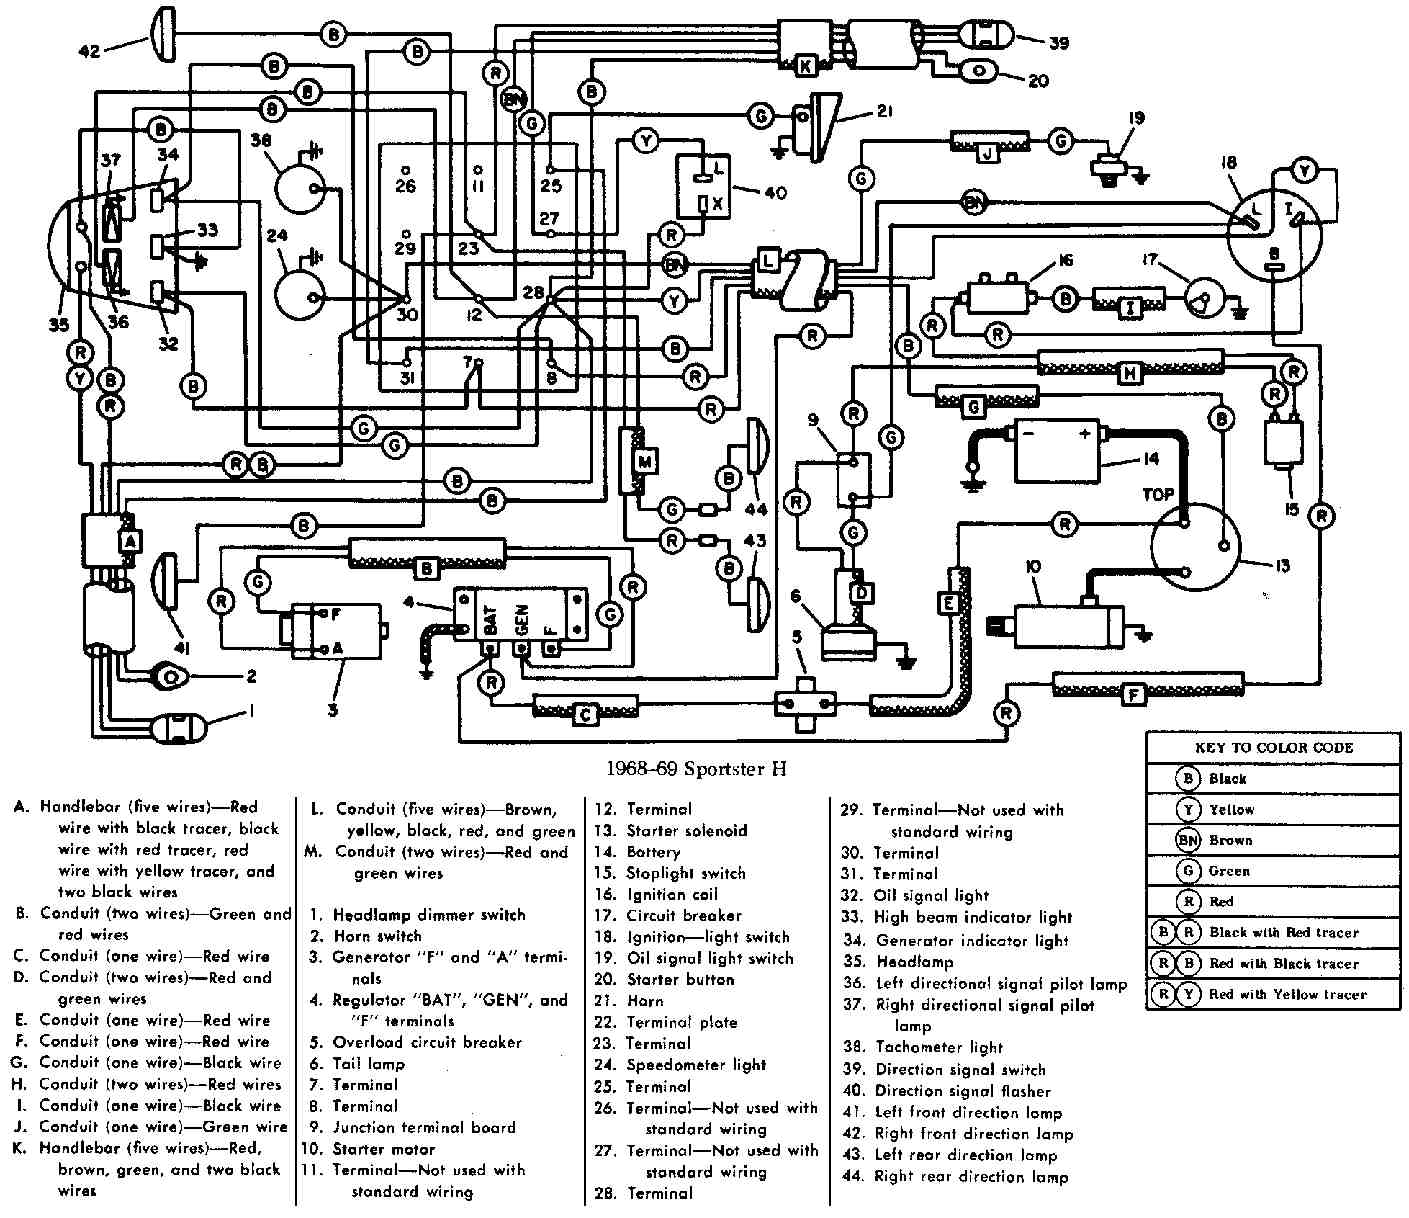 E320 Wiring Diagram Detailed Schematics 1999 Mercedes Fuse Page 4 And Ecu